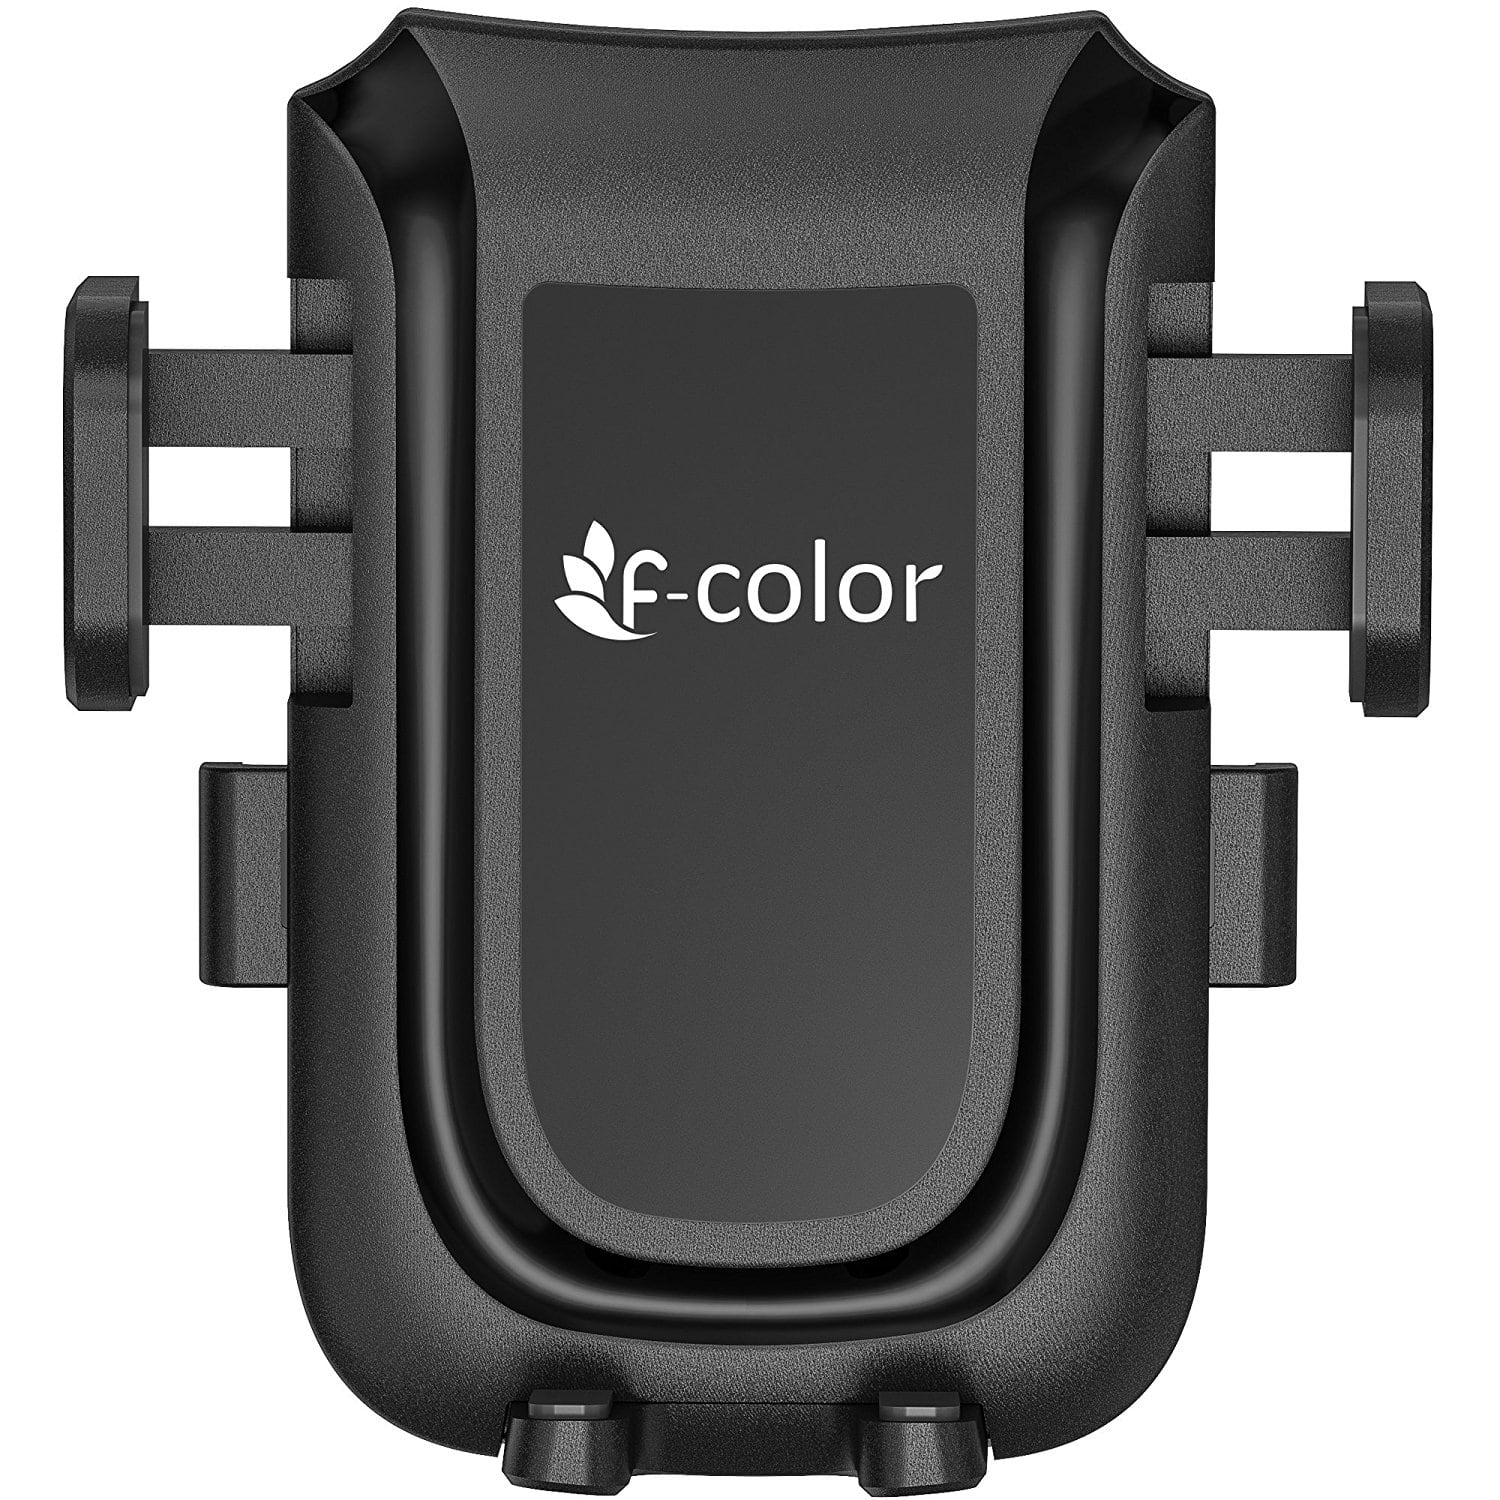 F-color Universal Auto Grip Air Vent Car Phone Mount for Car and Smartphones $6.99@Amazon